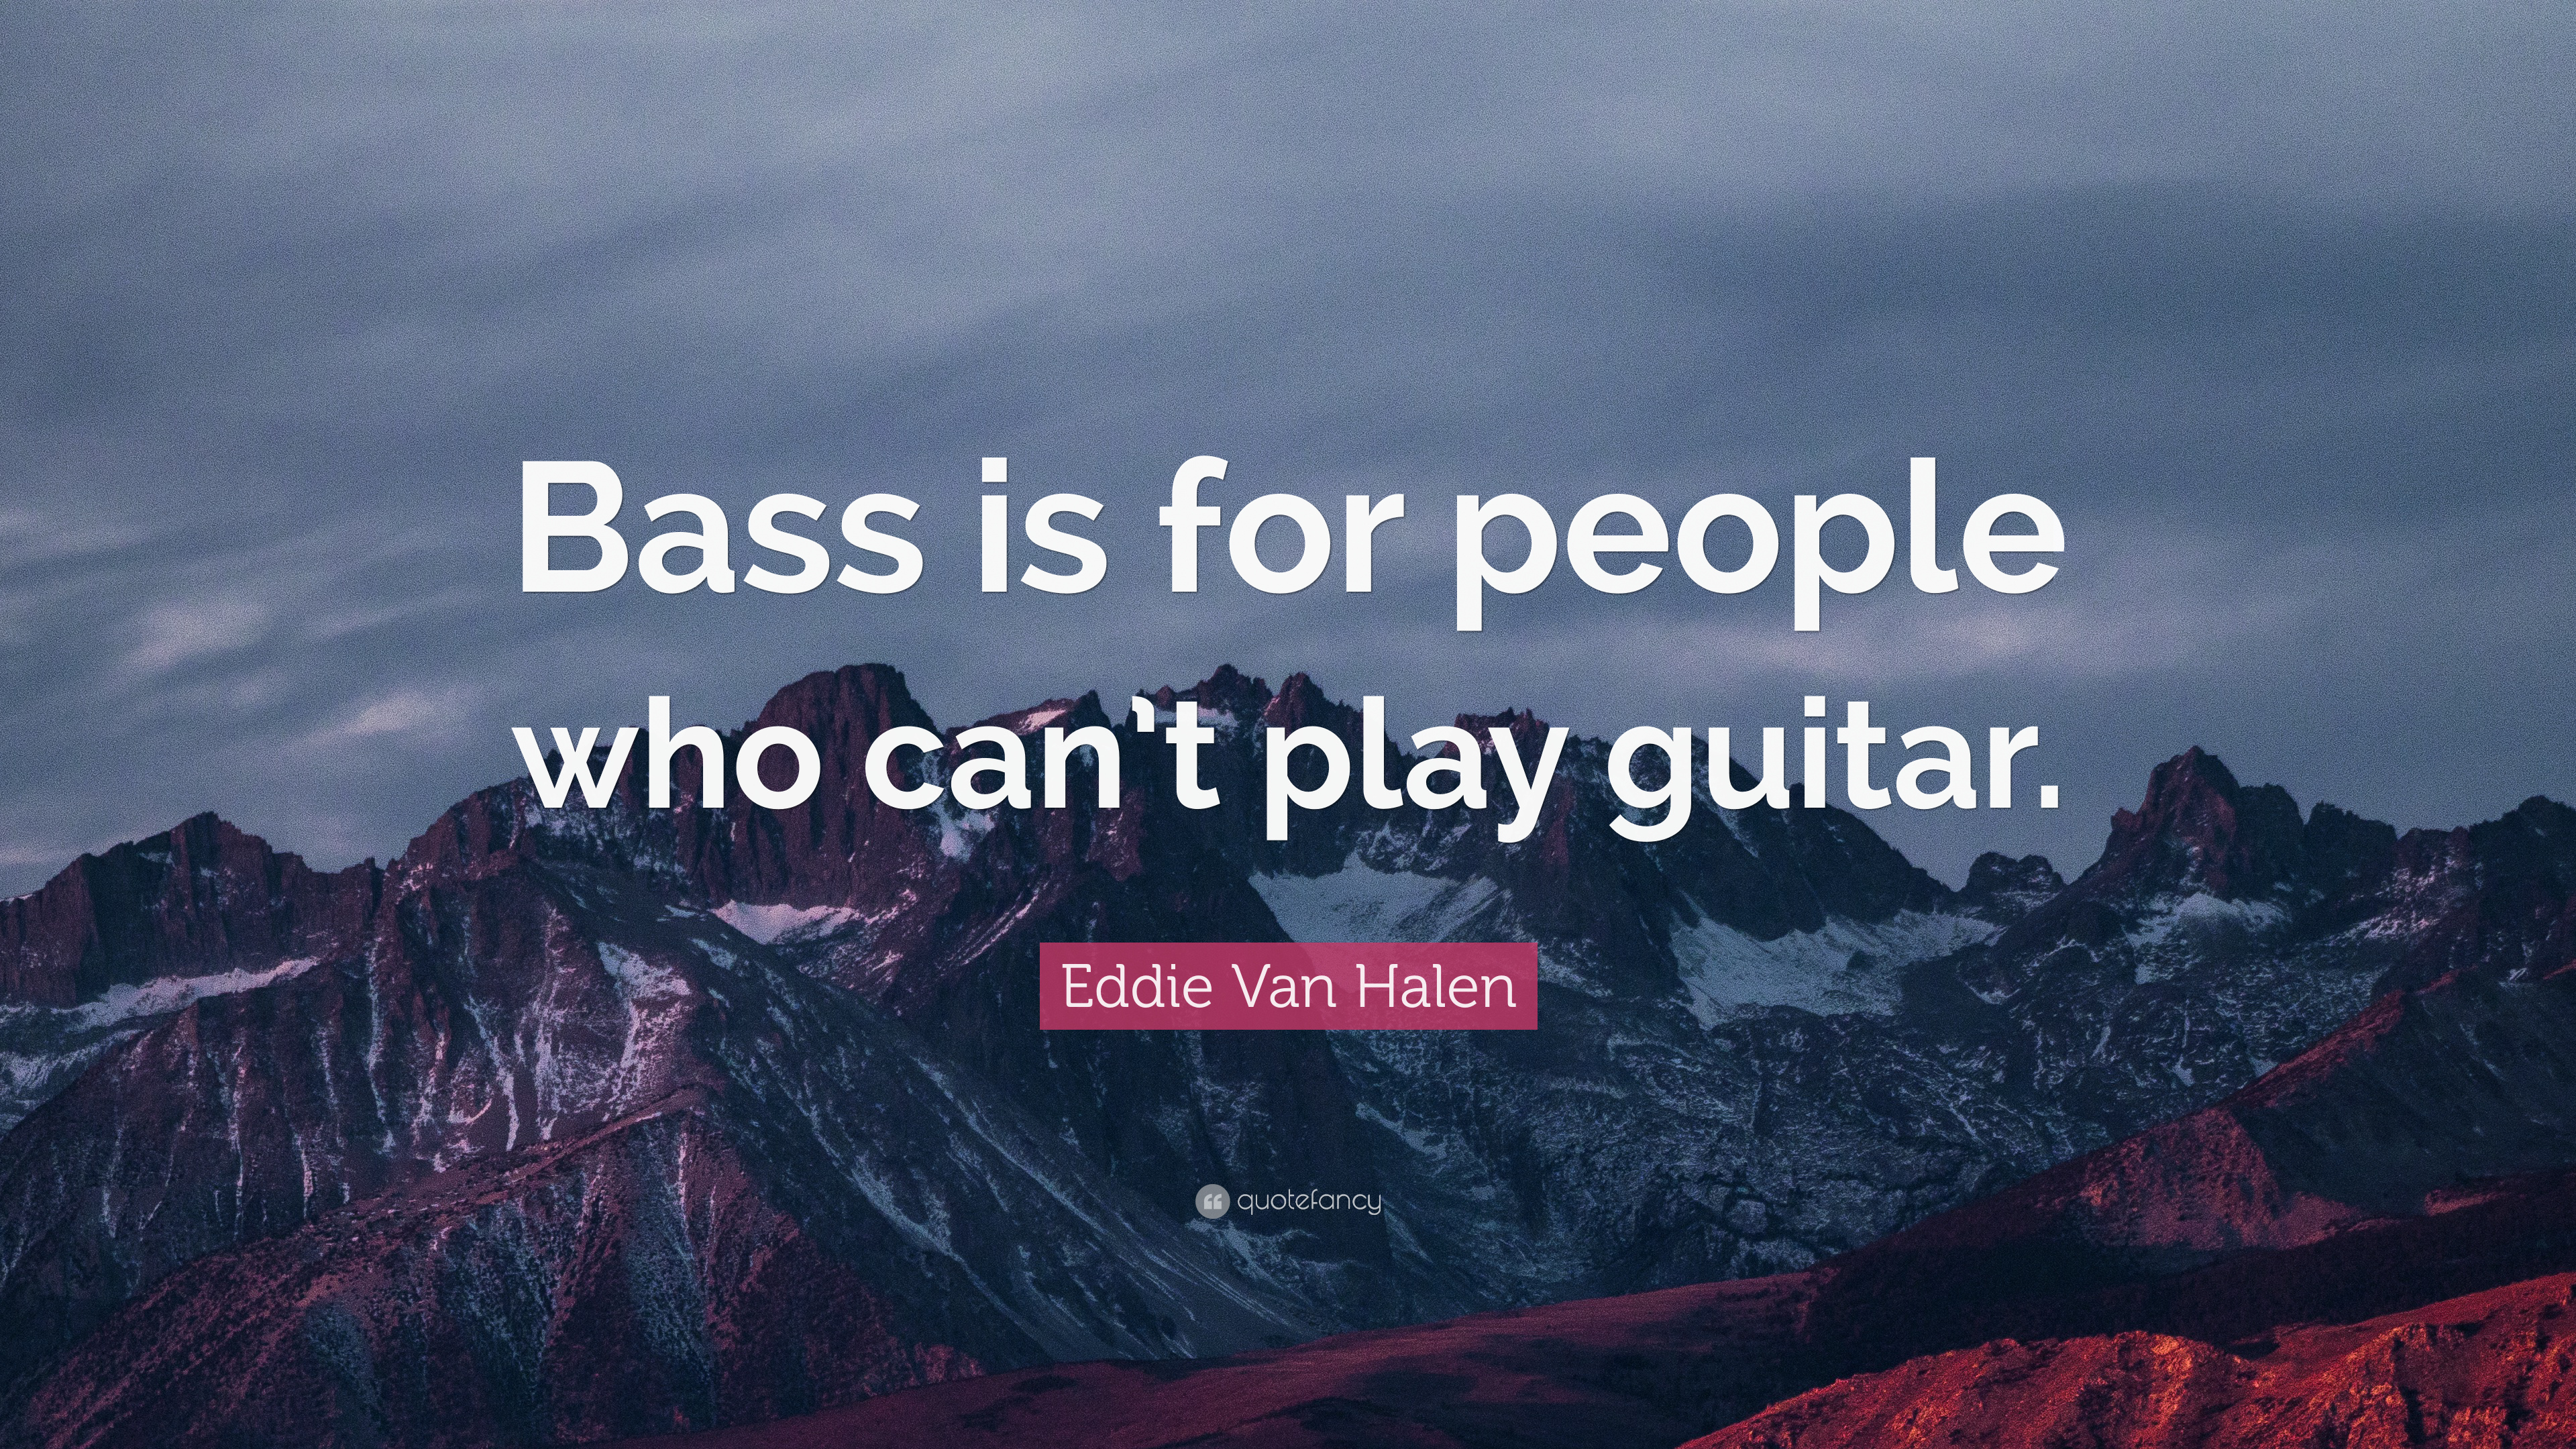 Eddie Van Halen Quote Bass Is For People Who Can T Play Guitar 7 Wallpapers Quotefancy